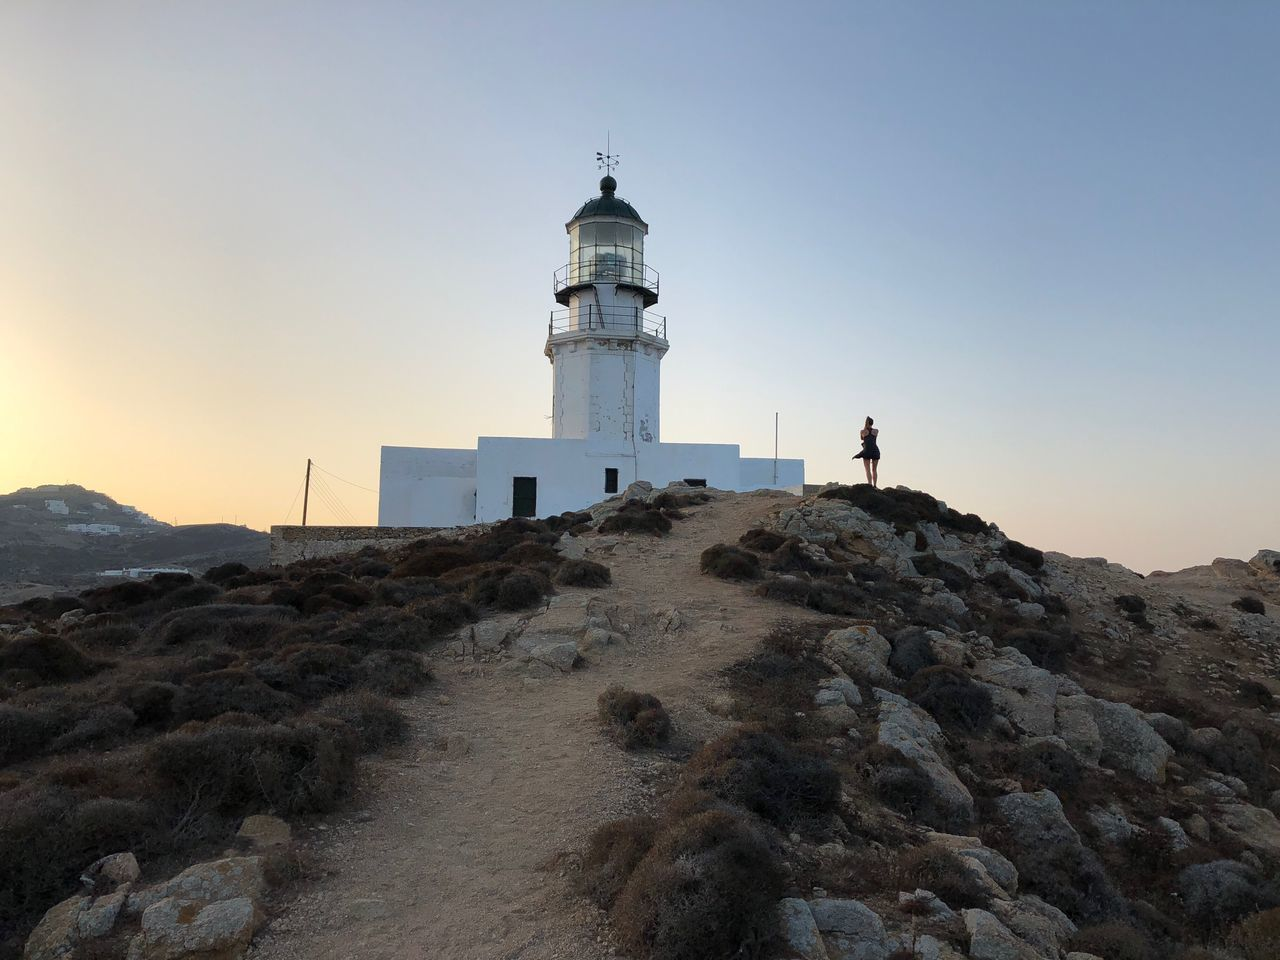 lighthouse, guidance, direction, safety, protection, architecture, security, building exterior, built structure, tower, nature, sky, sea, sunset, clear sky, beach, outdoors, scenics, cliff, travel destinations, sand dune, day, beauty in nature, no people